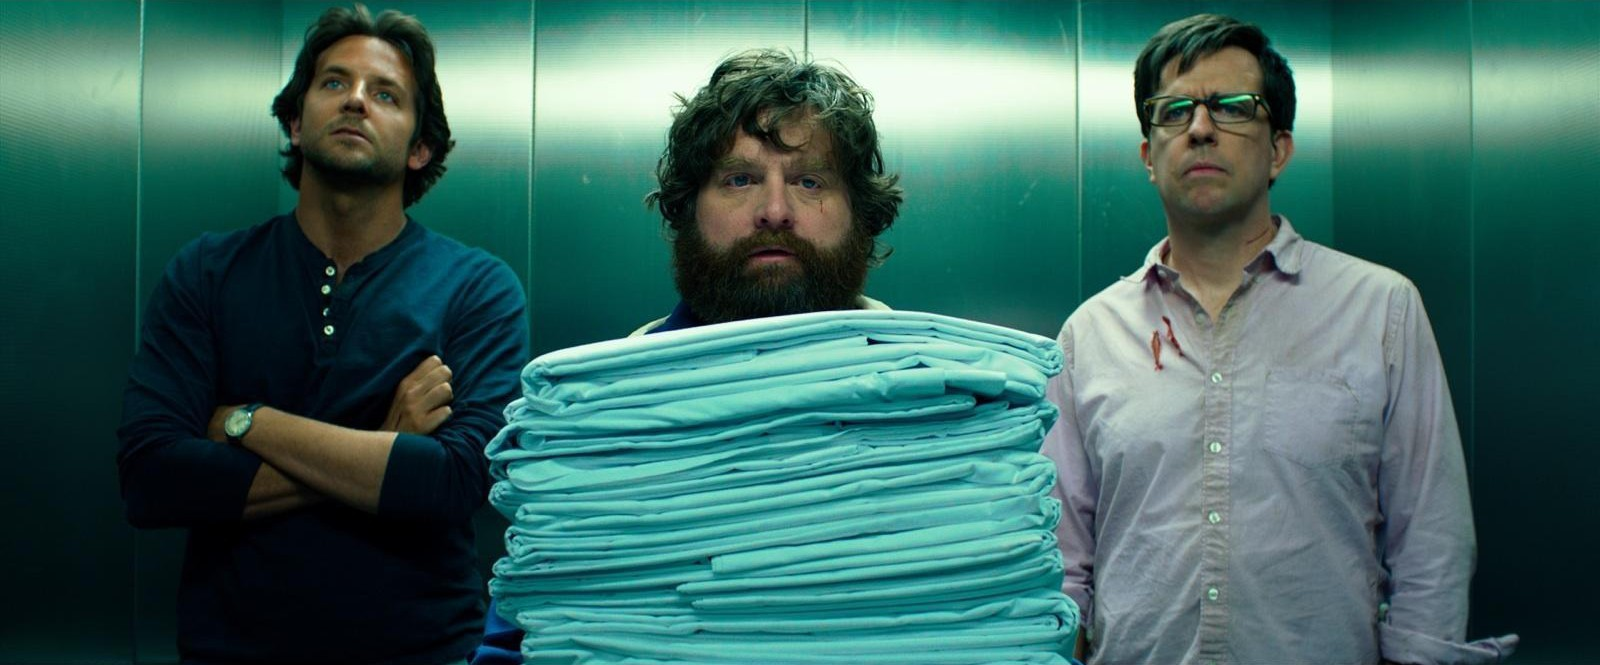 Bradley Cooper, Zack Galifianakis and Ed Helms in The Hangover Part III